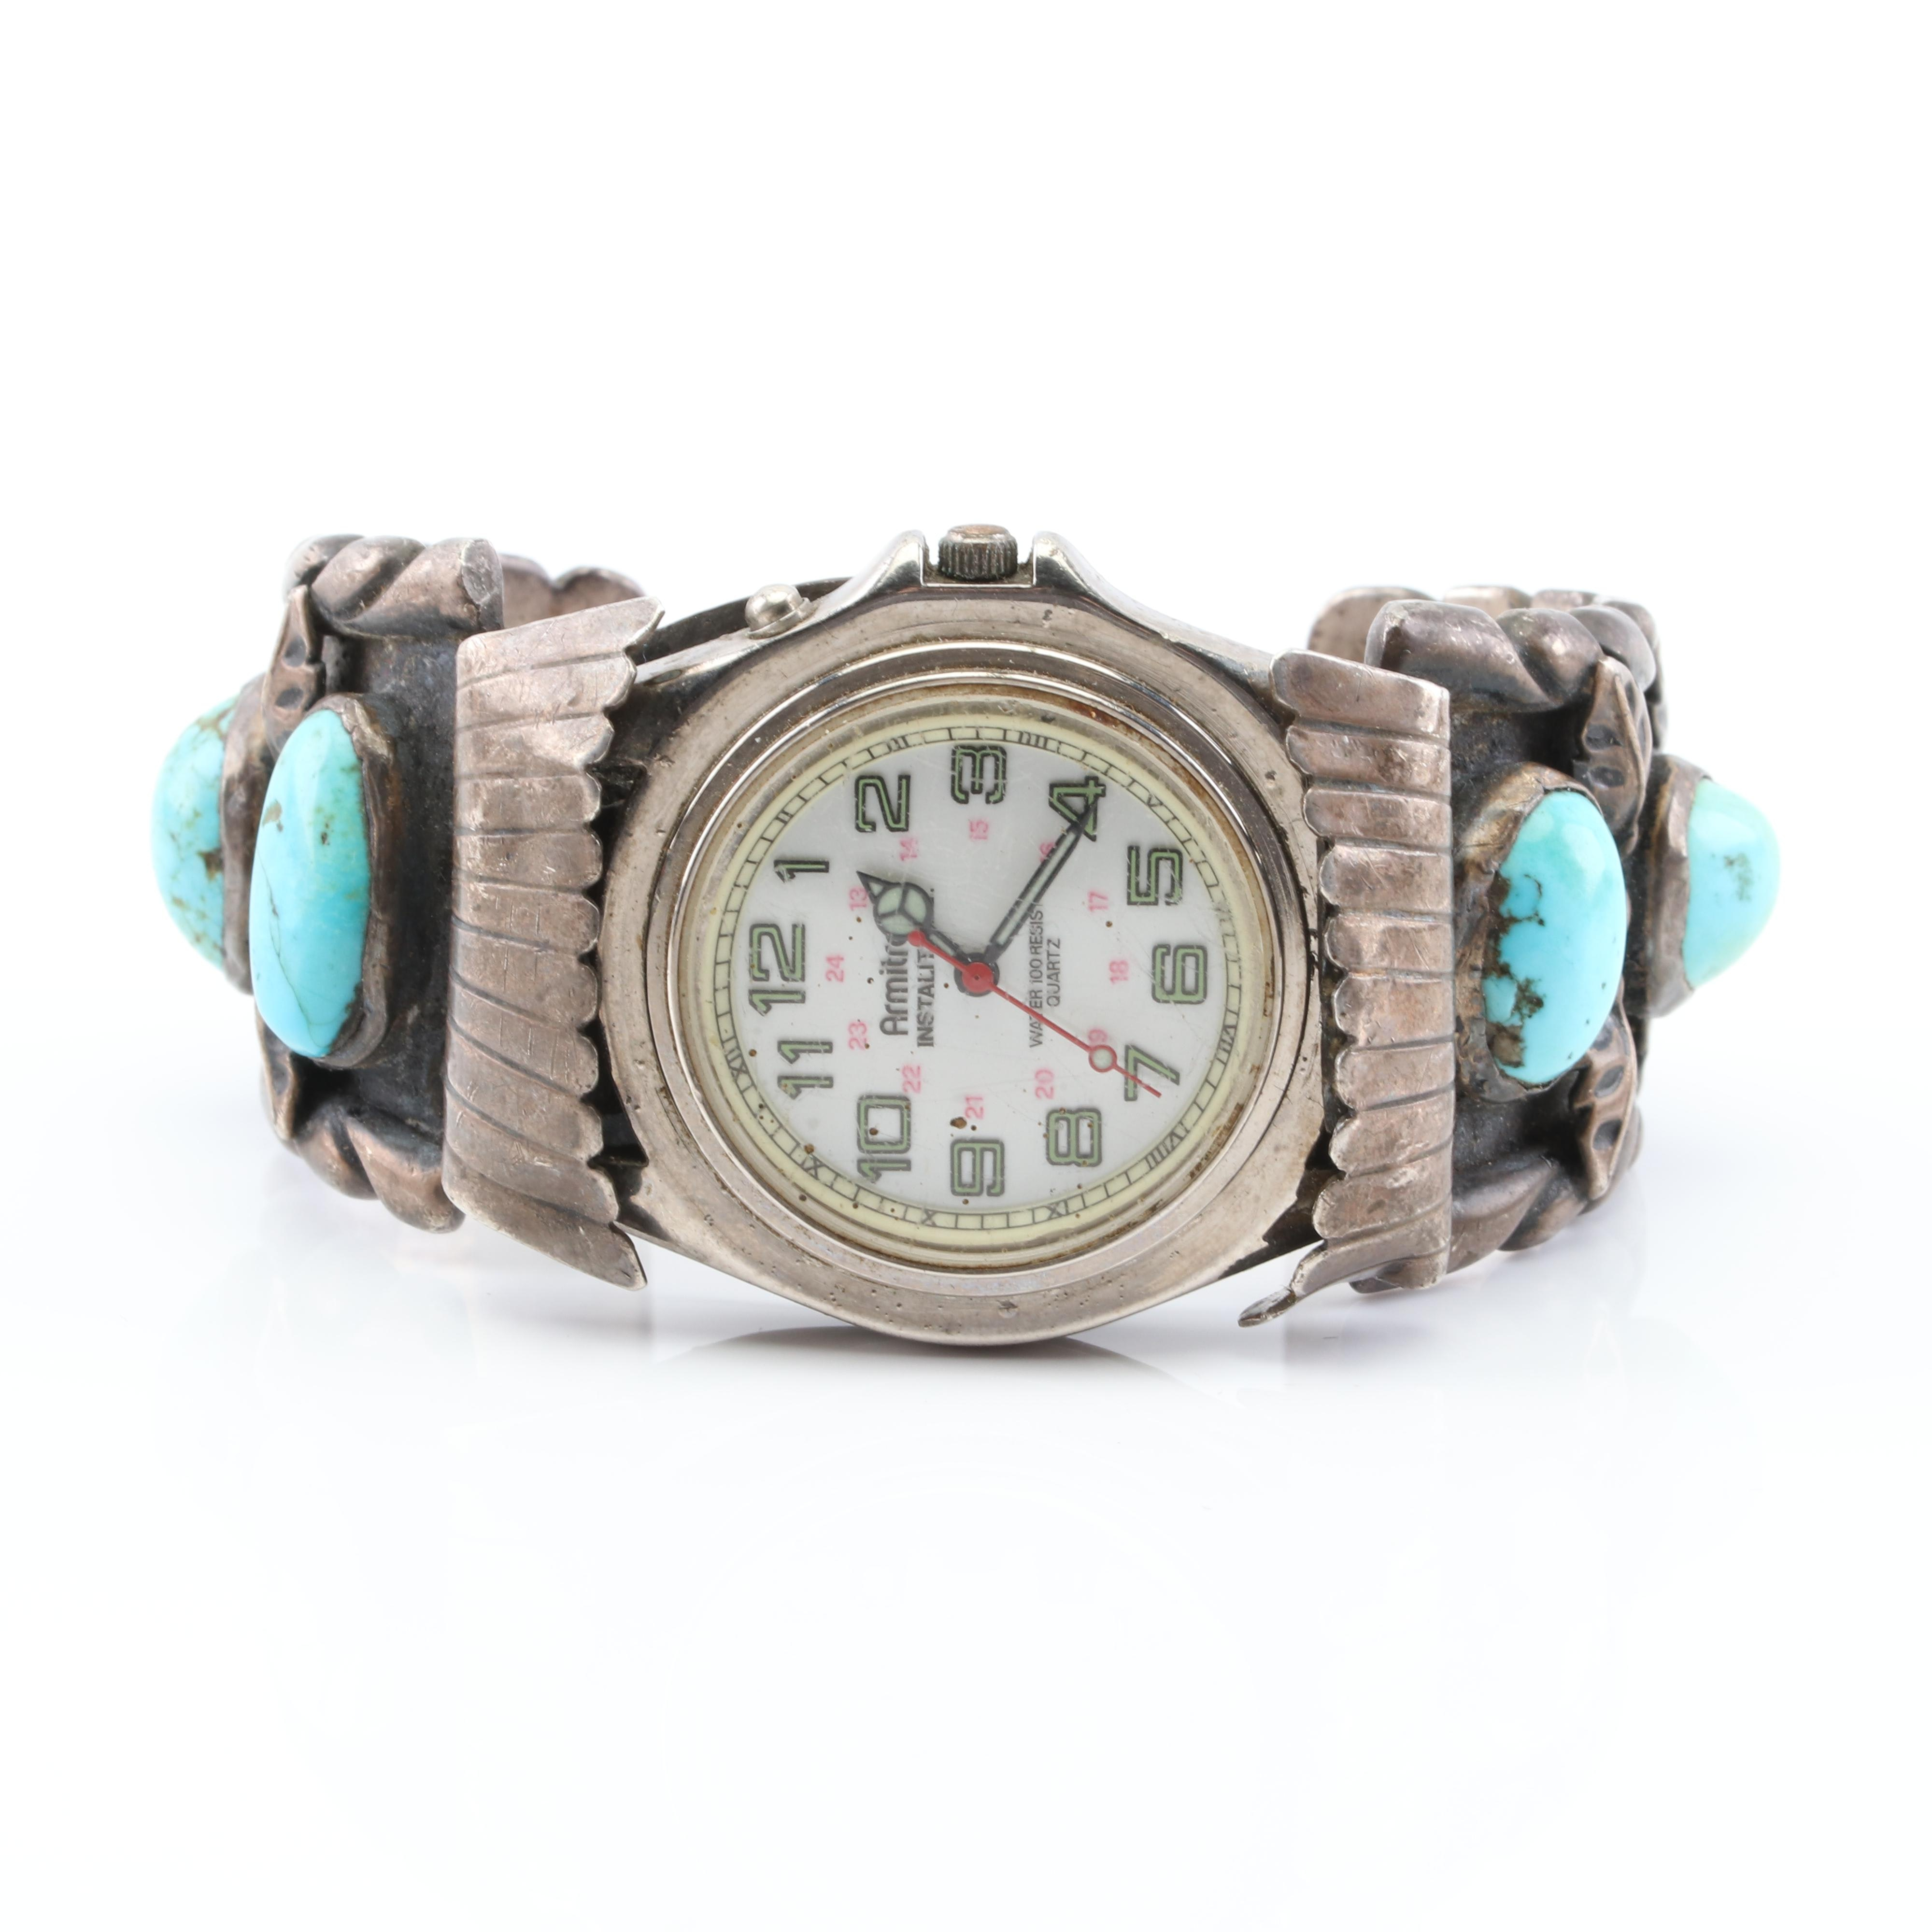 Sterling Silver Southwestern Style Turquoise Wristwatch with Amitron Dial